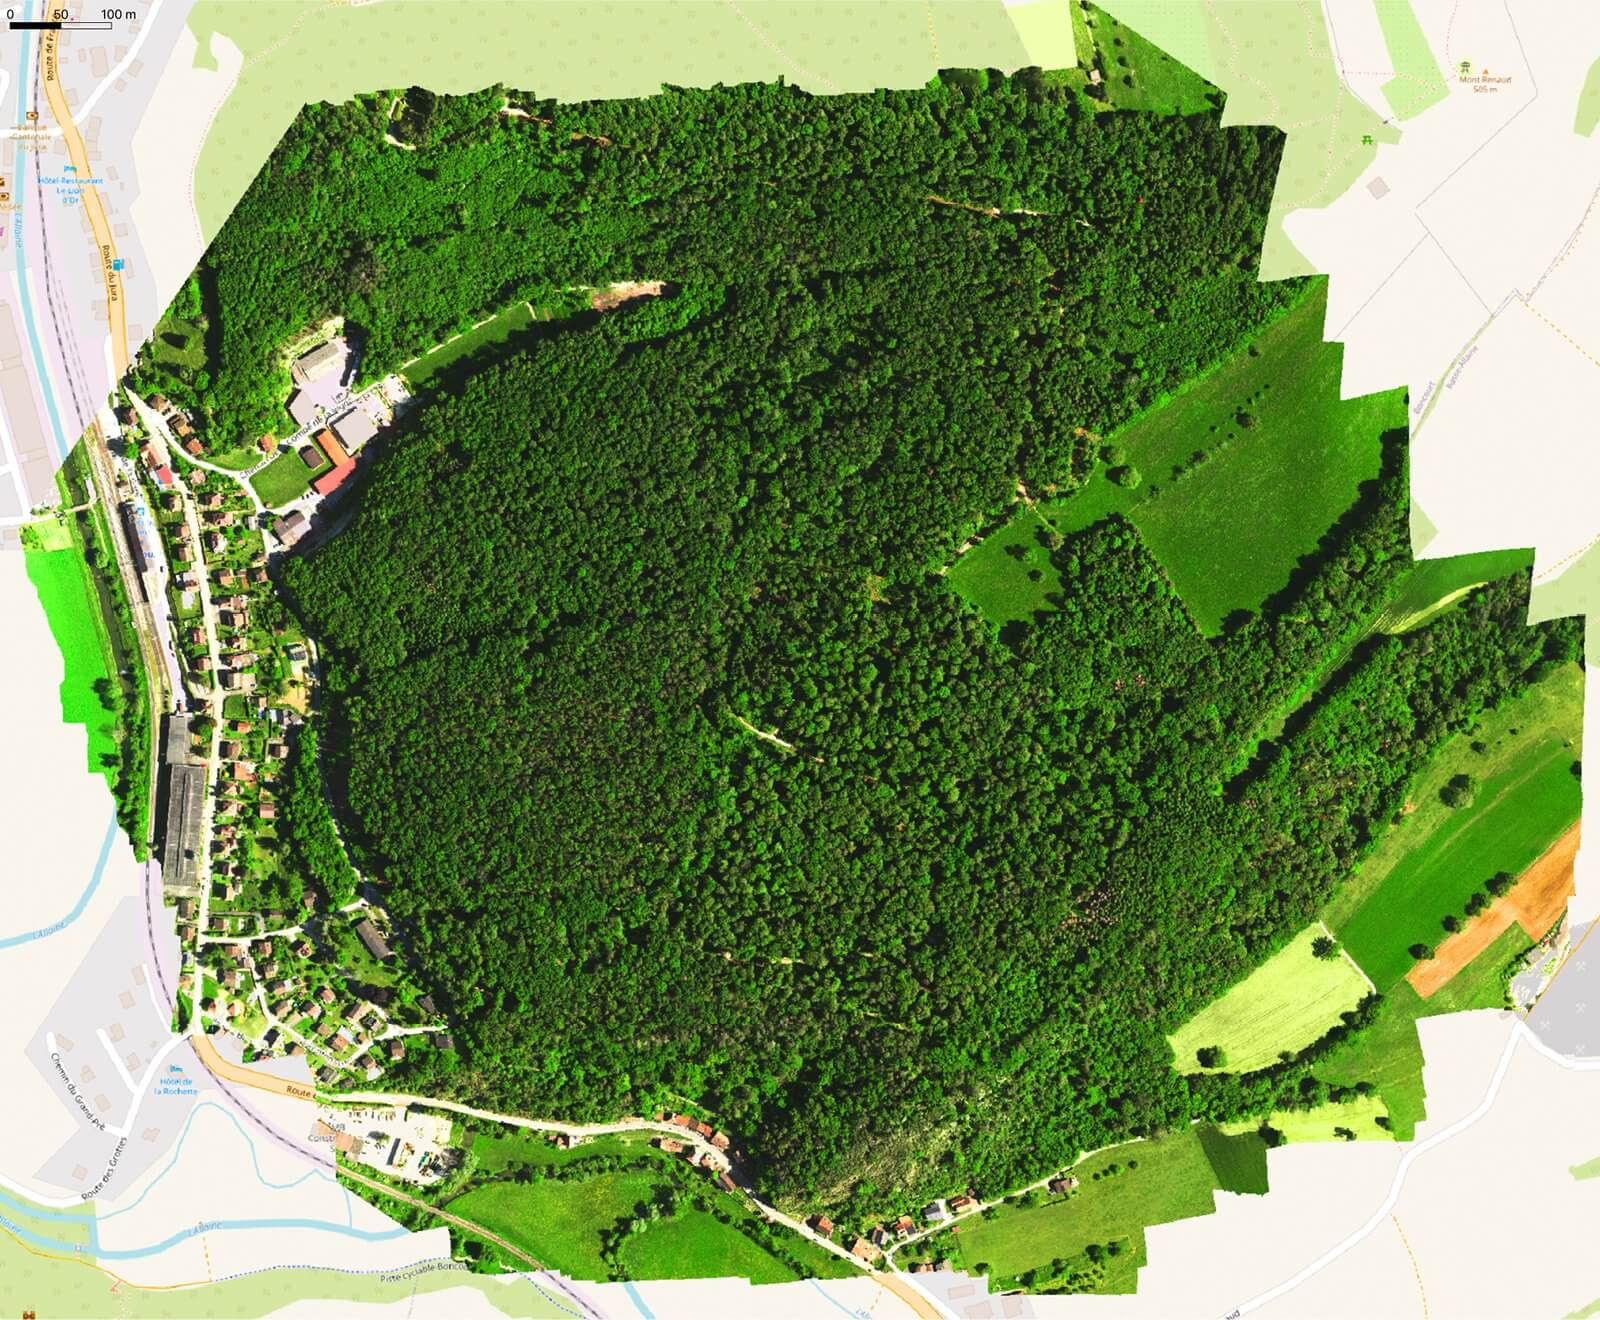 Multispectral drone output in the Jura mountains